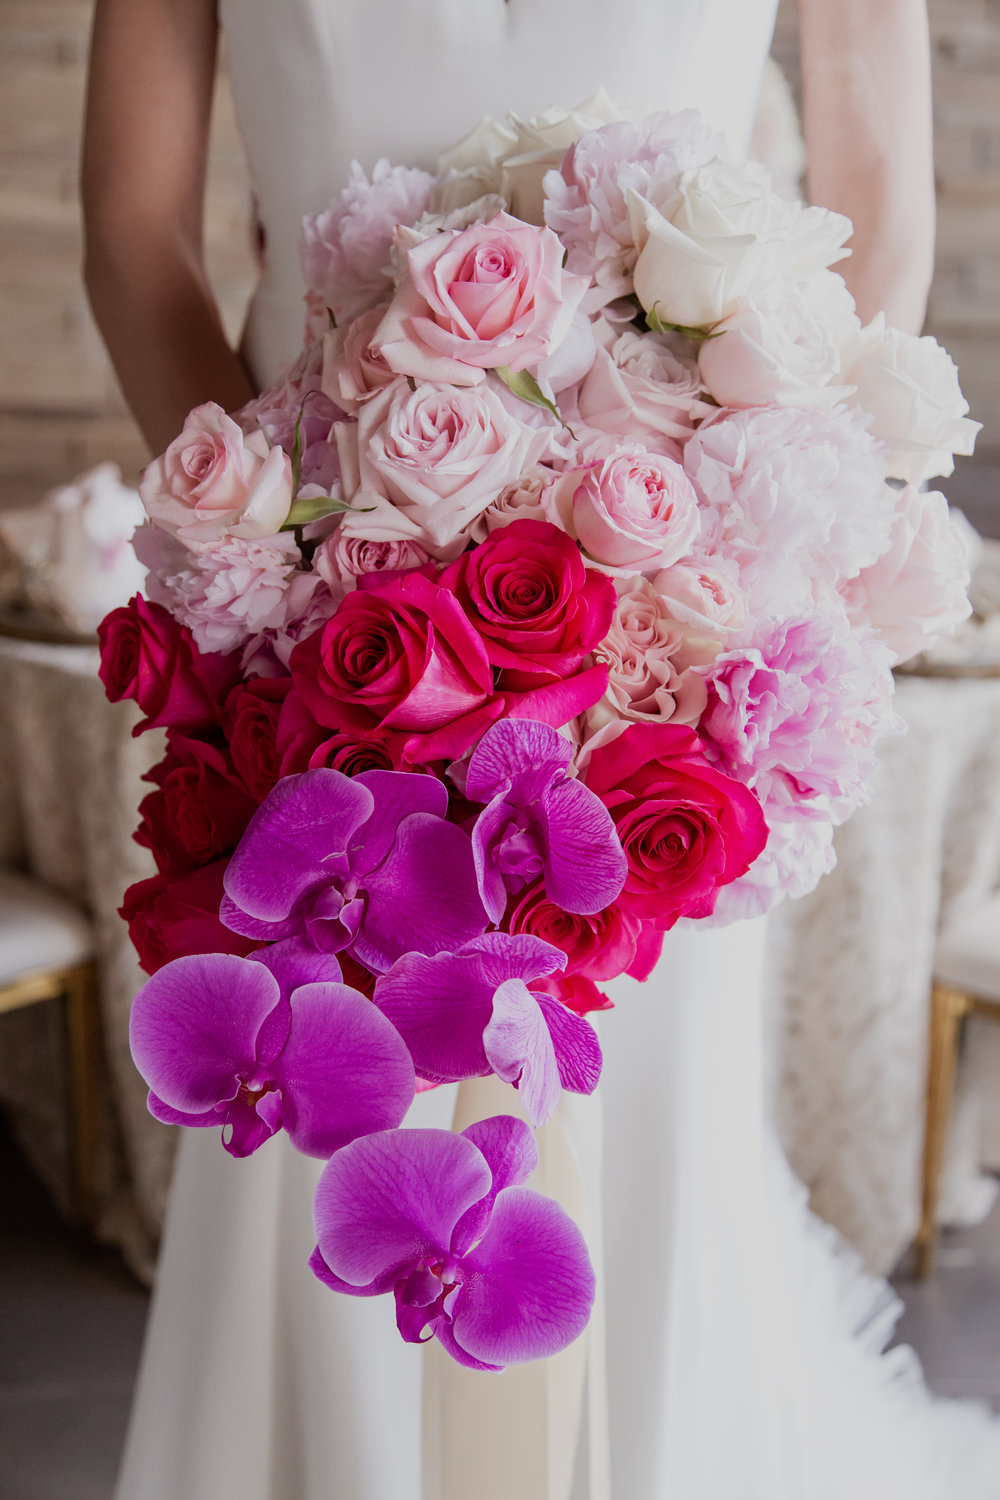 Full and lush ombre bouquet. Las Vegas Wedding Planner & Event Designer  Andrea Eppolito Events  · Photography by  Adam Frazier Photo  · Video by  M Place Productions  · Floral & Decor by  DBD Las Vegas  · Venue  ARIA Primrose Ballroom  · Cigar Band by  Royal Cigar Company  and  Jason of Beverly Hills  · Beauty by  Glammed Up Las Vegas  · Dress by  Vera Wang  · Salon  Couture Bride Las Vegas  · Shoes  Bella Belle Shoes  · Bride  Katrina May Armenta  · Groom  Lucas Cuevas